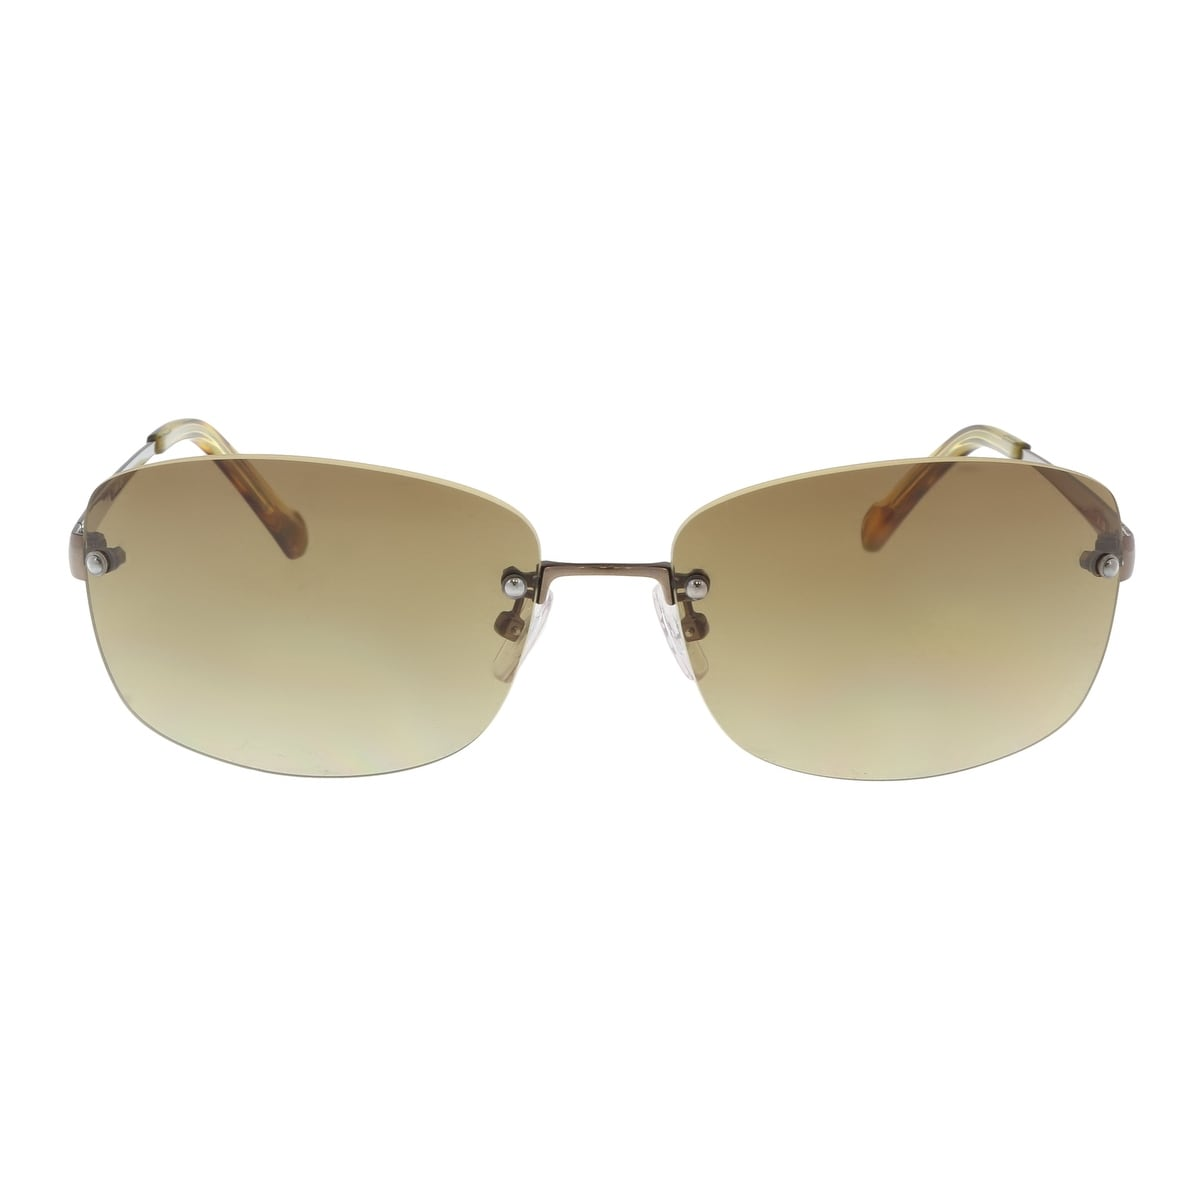 9fa234cca49 Shop Lacoste L139 SA 234 Gold Rectangle Sunglasses - 60-16-135 - Free  Shipping Today - Overstock.com - 18951301